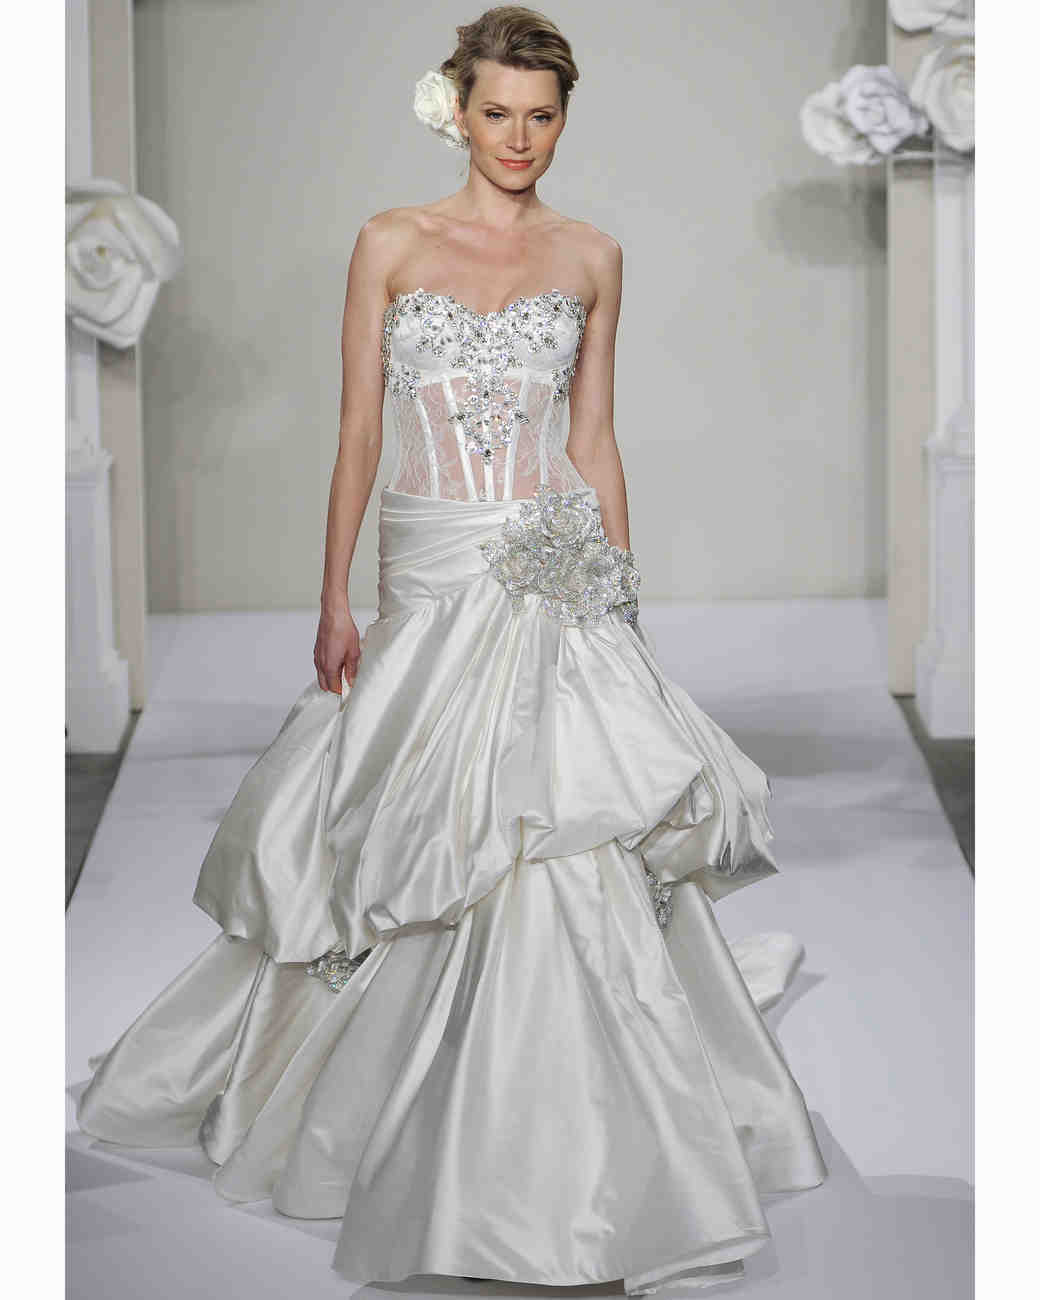 Pnina Tornai for Kleinfeld Fall 2013 Collection